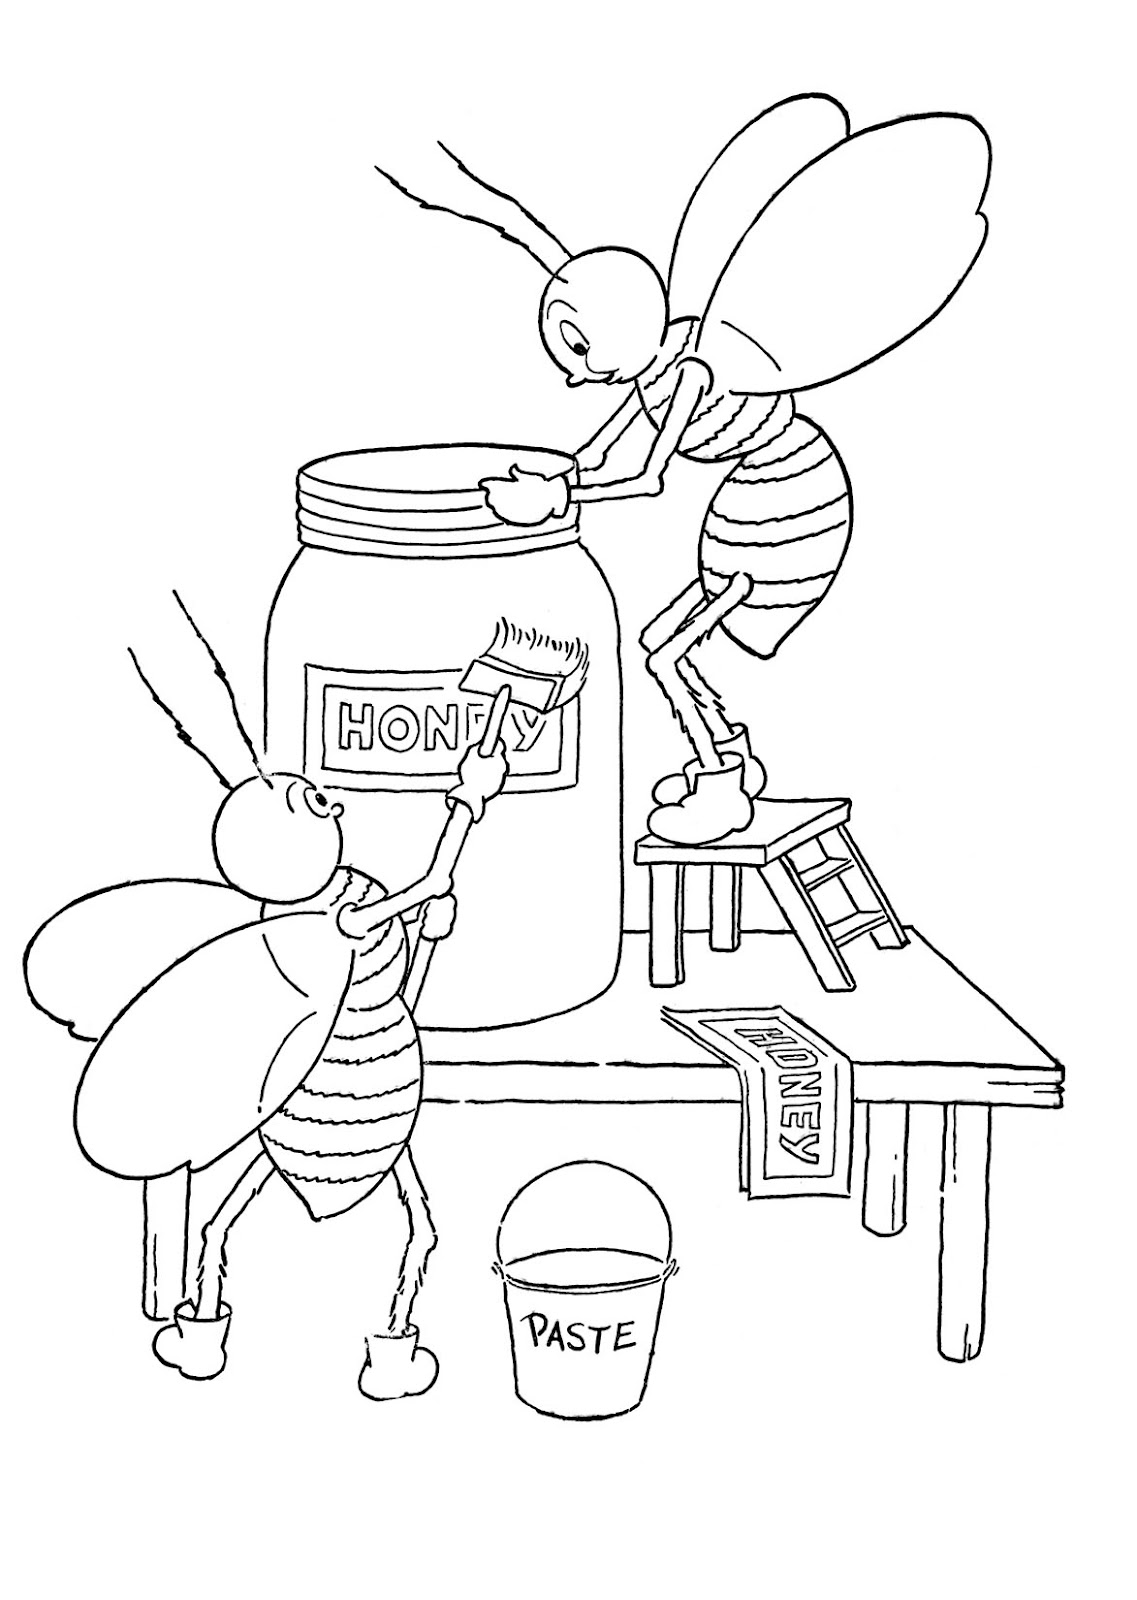 Bee and butterfly coloring pages - Kids Printable Honey Bees Coloring Page